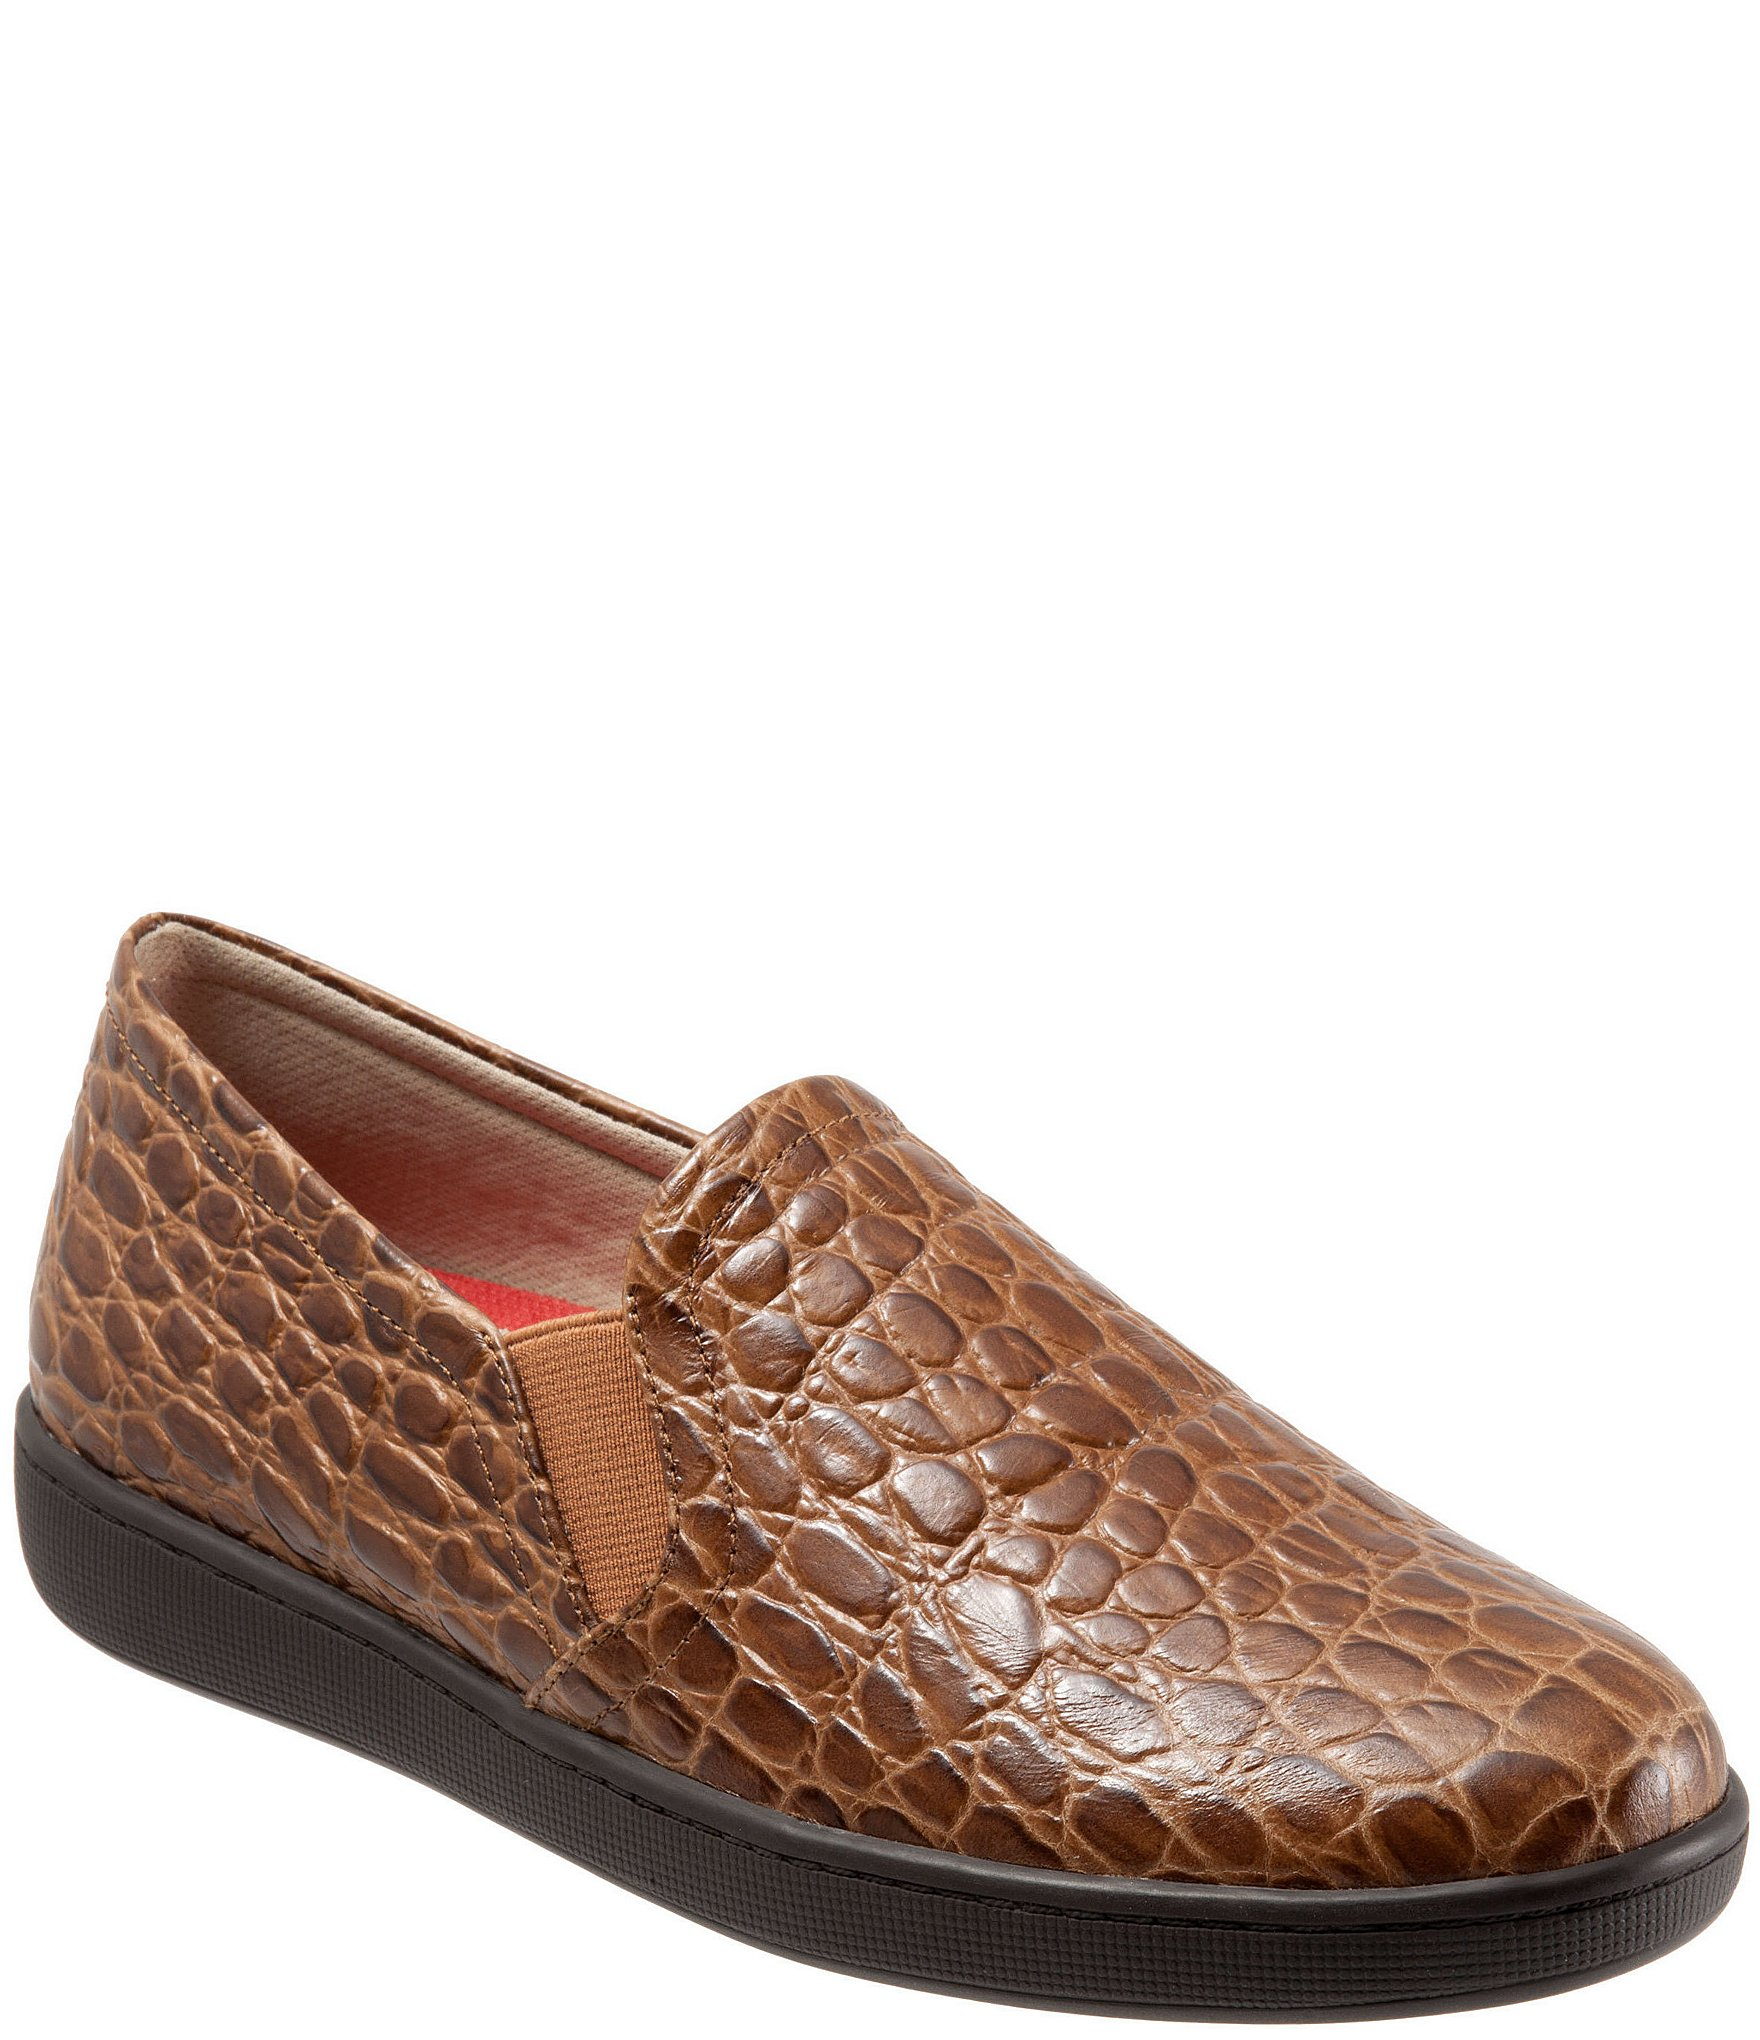 Briley Embossed Croc Leather Loafers qn9pT